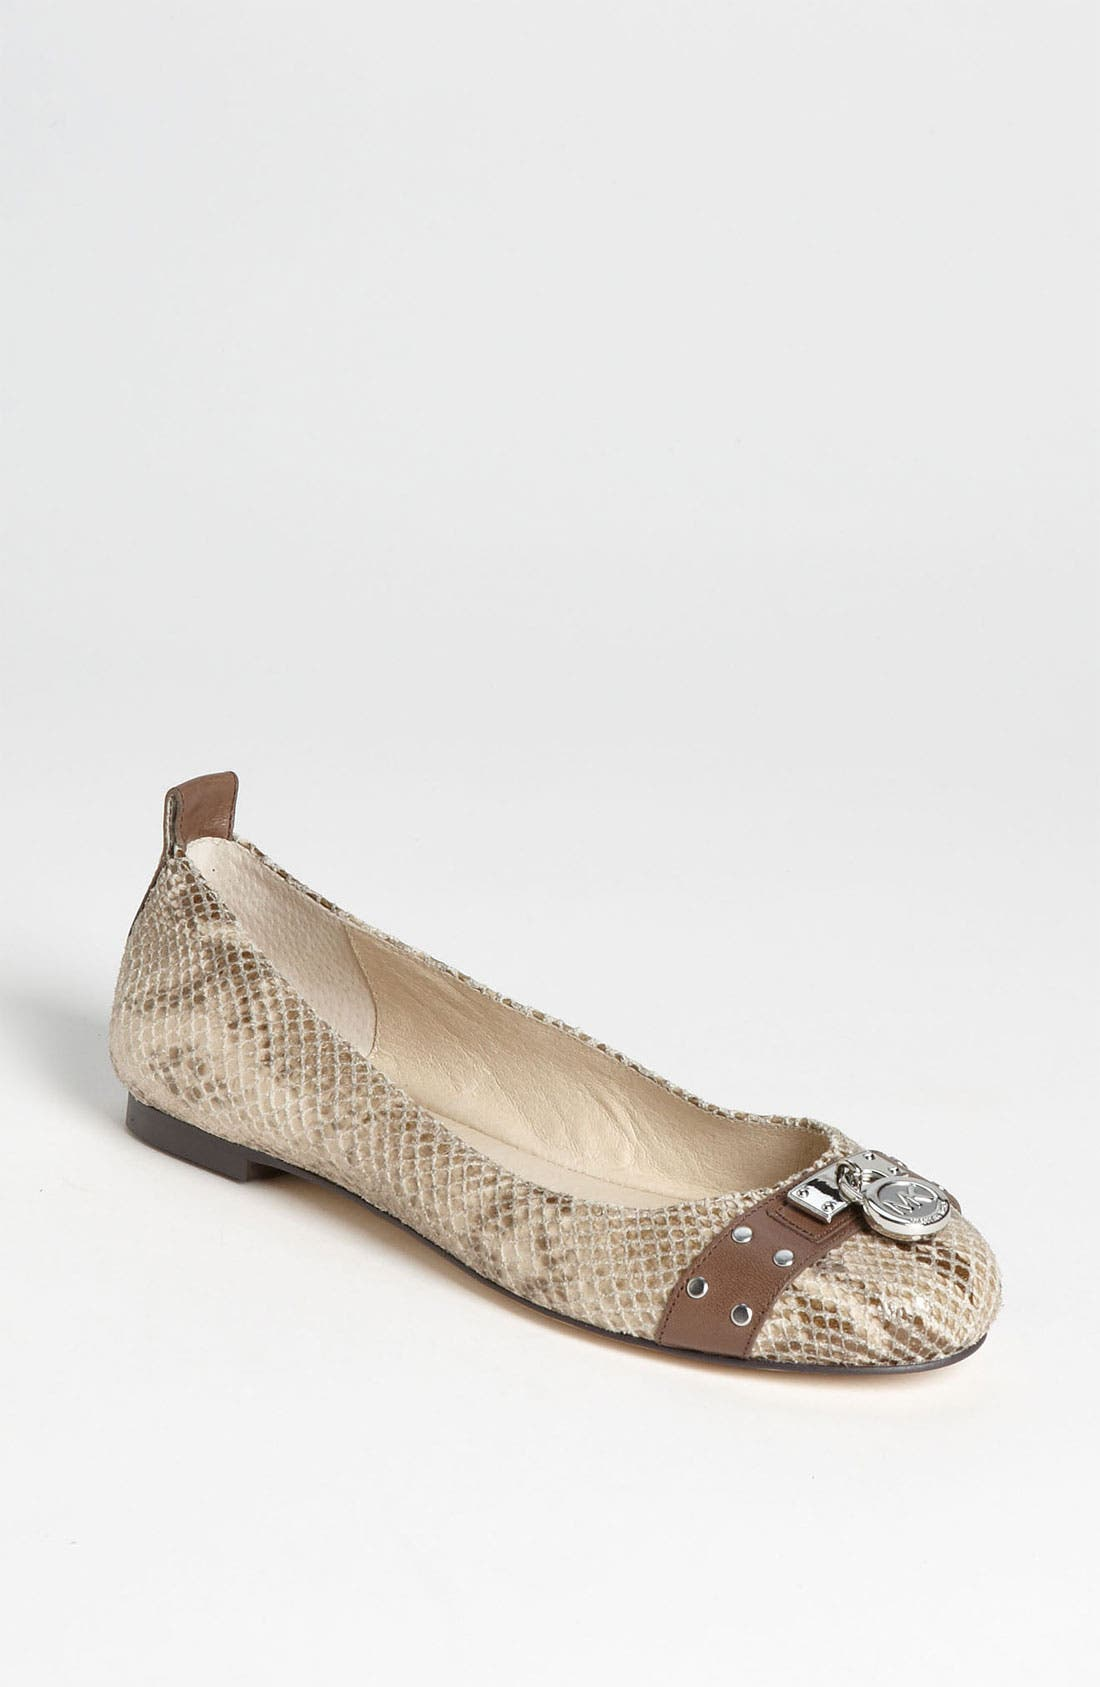 Alternate Image 1 Selected - MICHAEL Michael Kors 'Hamilton' Studded Ballet Flat